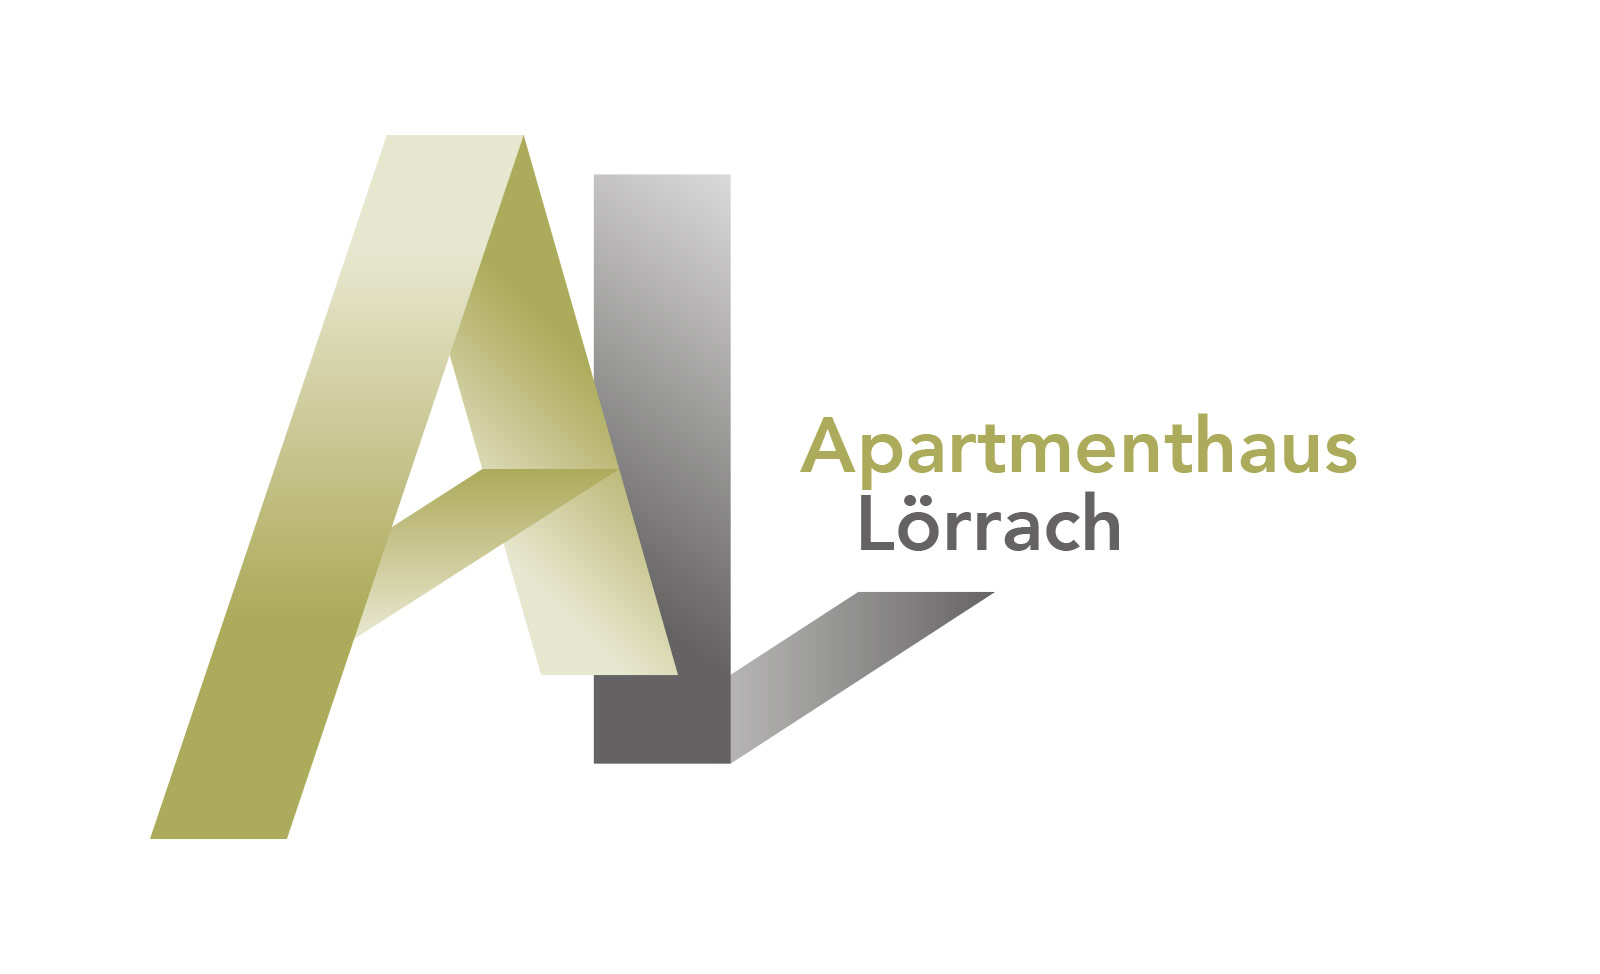 Apartmenthaus Lörrach Logo Design